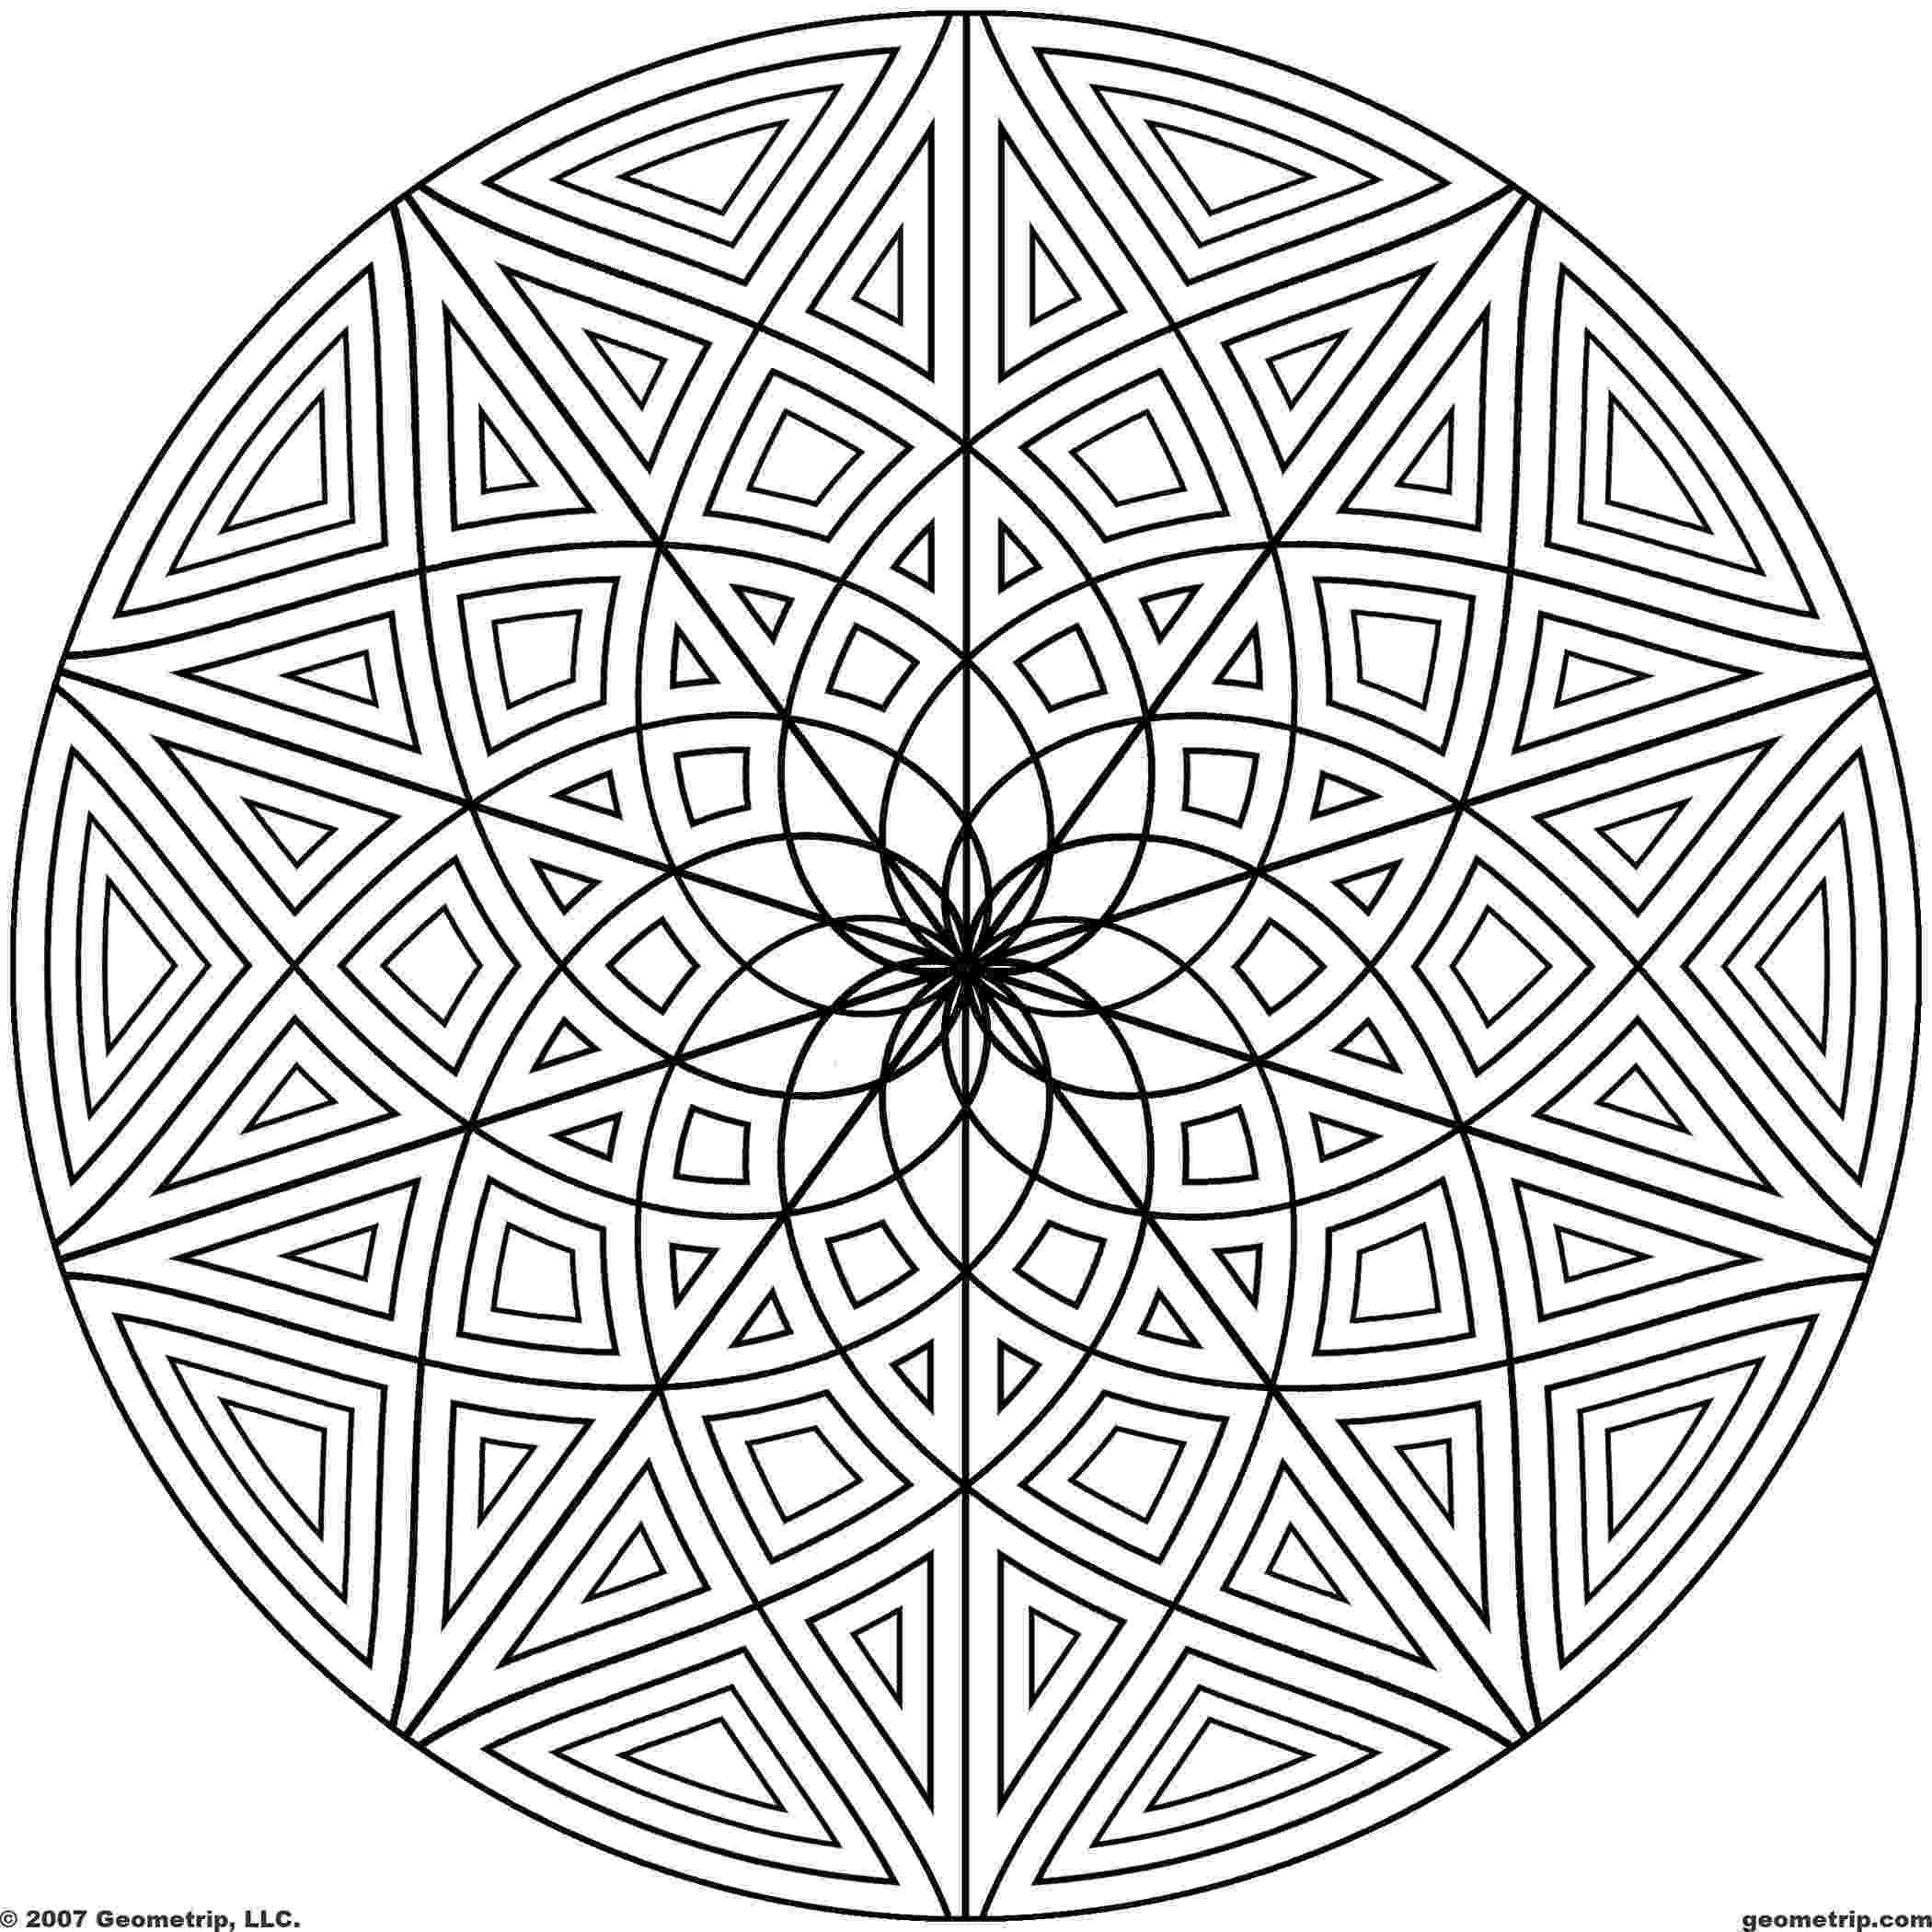 free pattern coloring pages pattern coloring pages best coloring pages for kids pattern coloring free pages